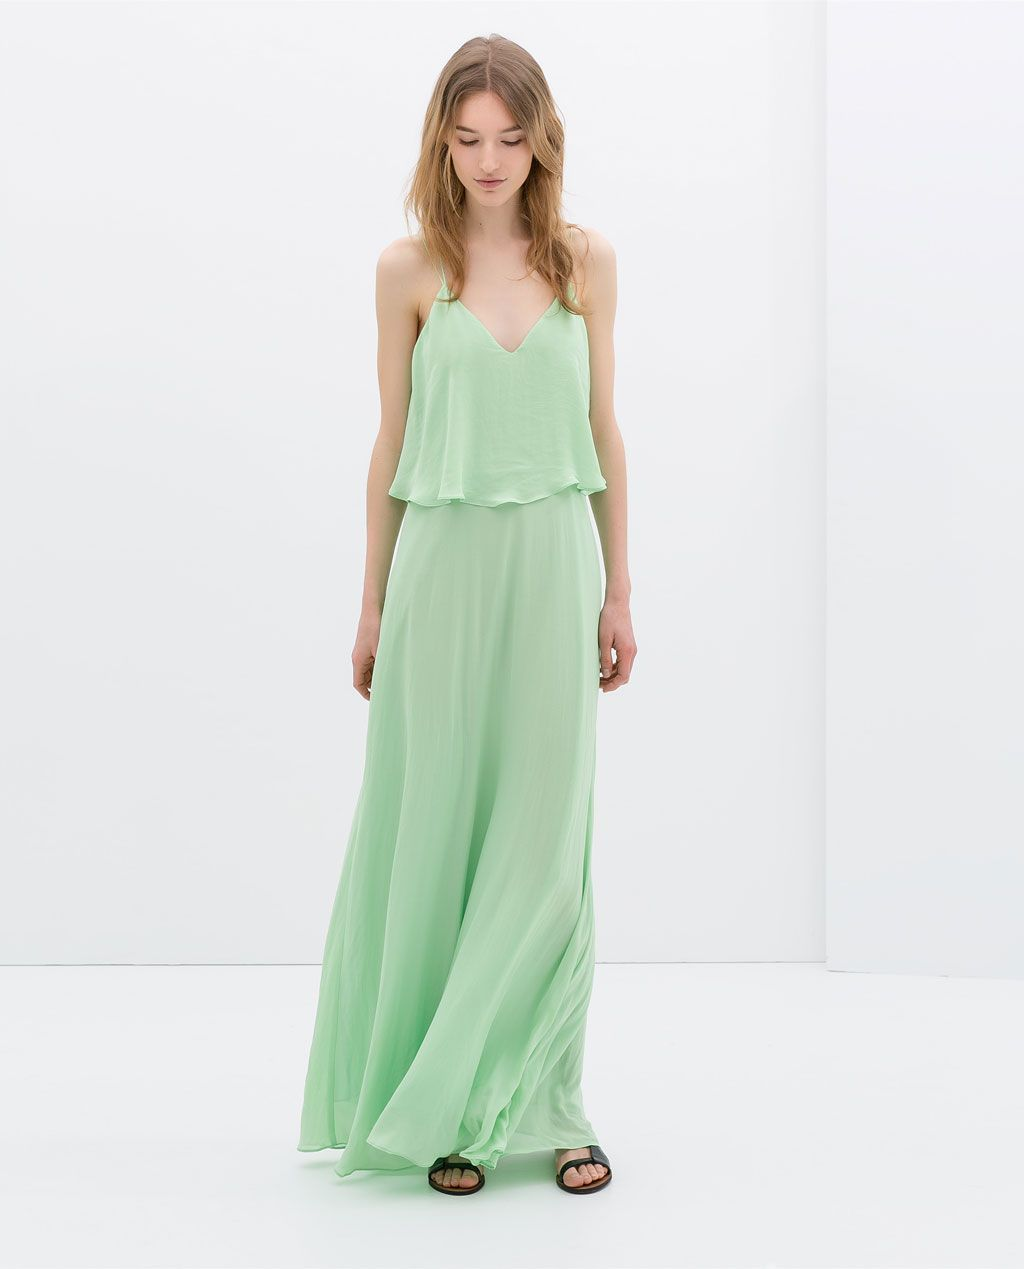 Maxi dress with low cut back from zara my style haves want zara maxi dress with low cut back ombrellifo Images